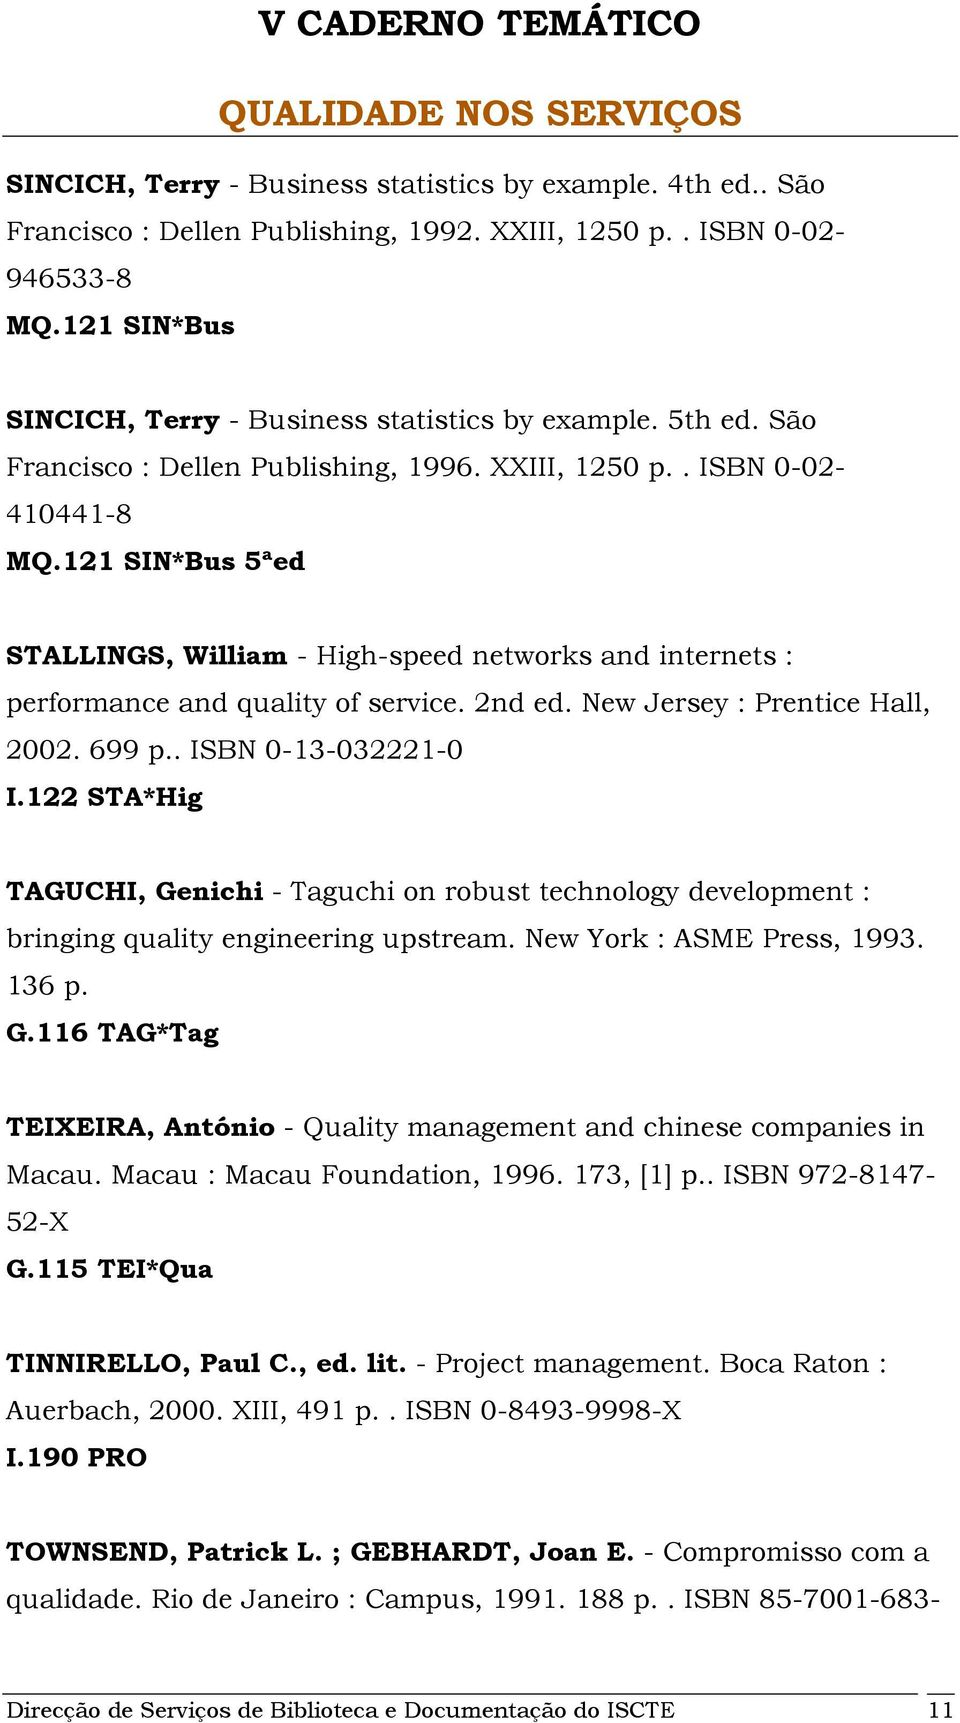 2nd ed. New Jersey : Prentice Hall, 2002. 699 p.. ISBN 0-13-032221-0 I.122 STA*Hig TAGUCHI, Genichi - Taguchi on robust technology development : bringing quality engineering upstream.